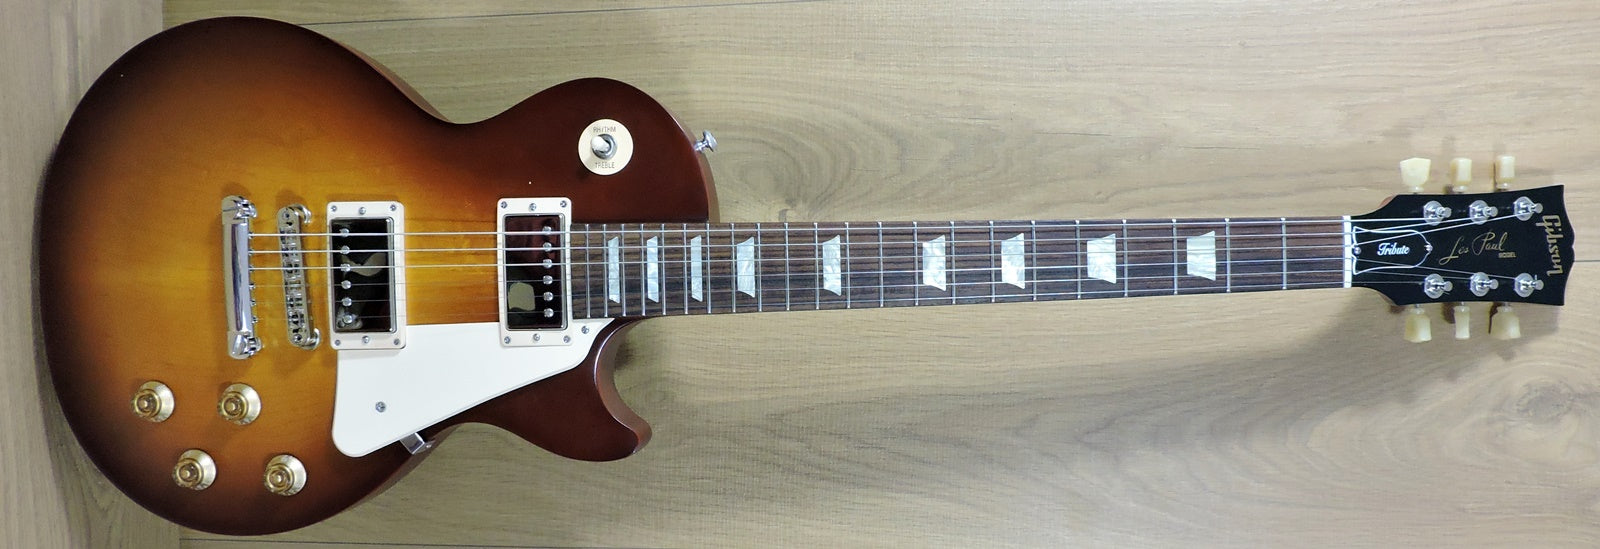 Gibson Les Paul Tribute - Used